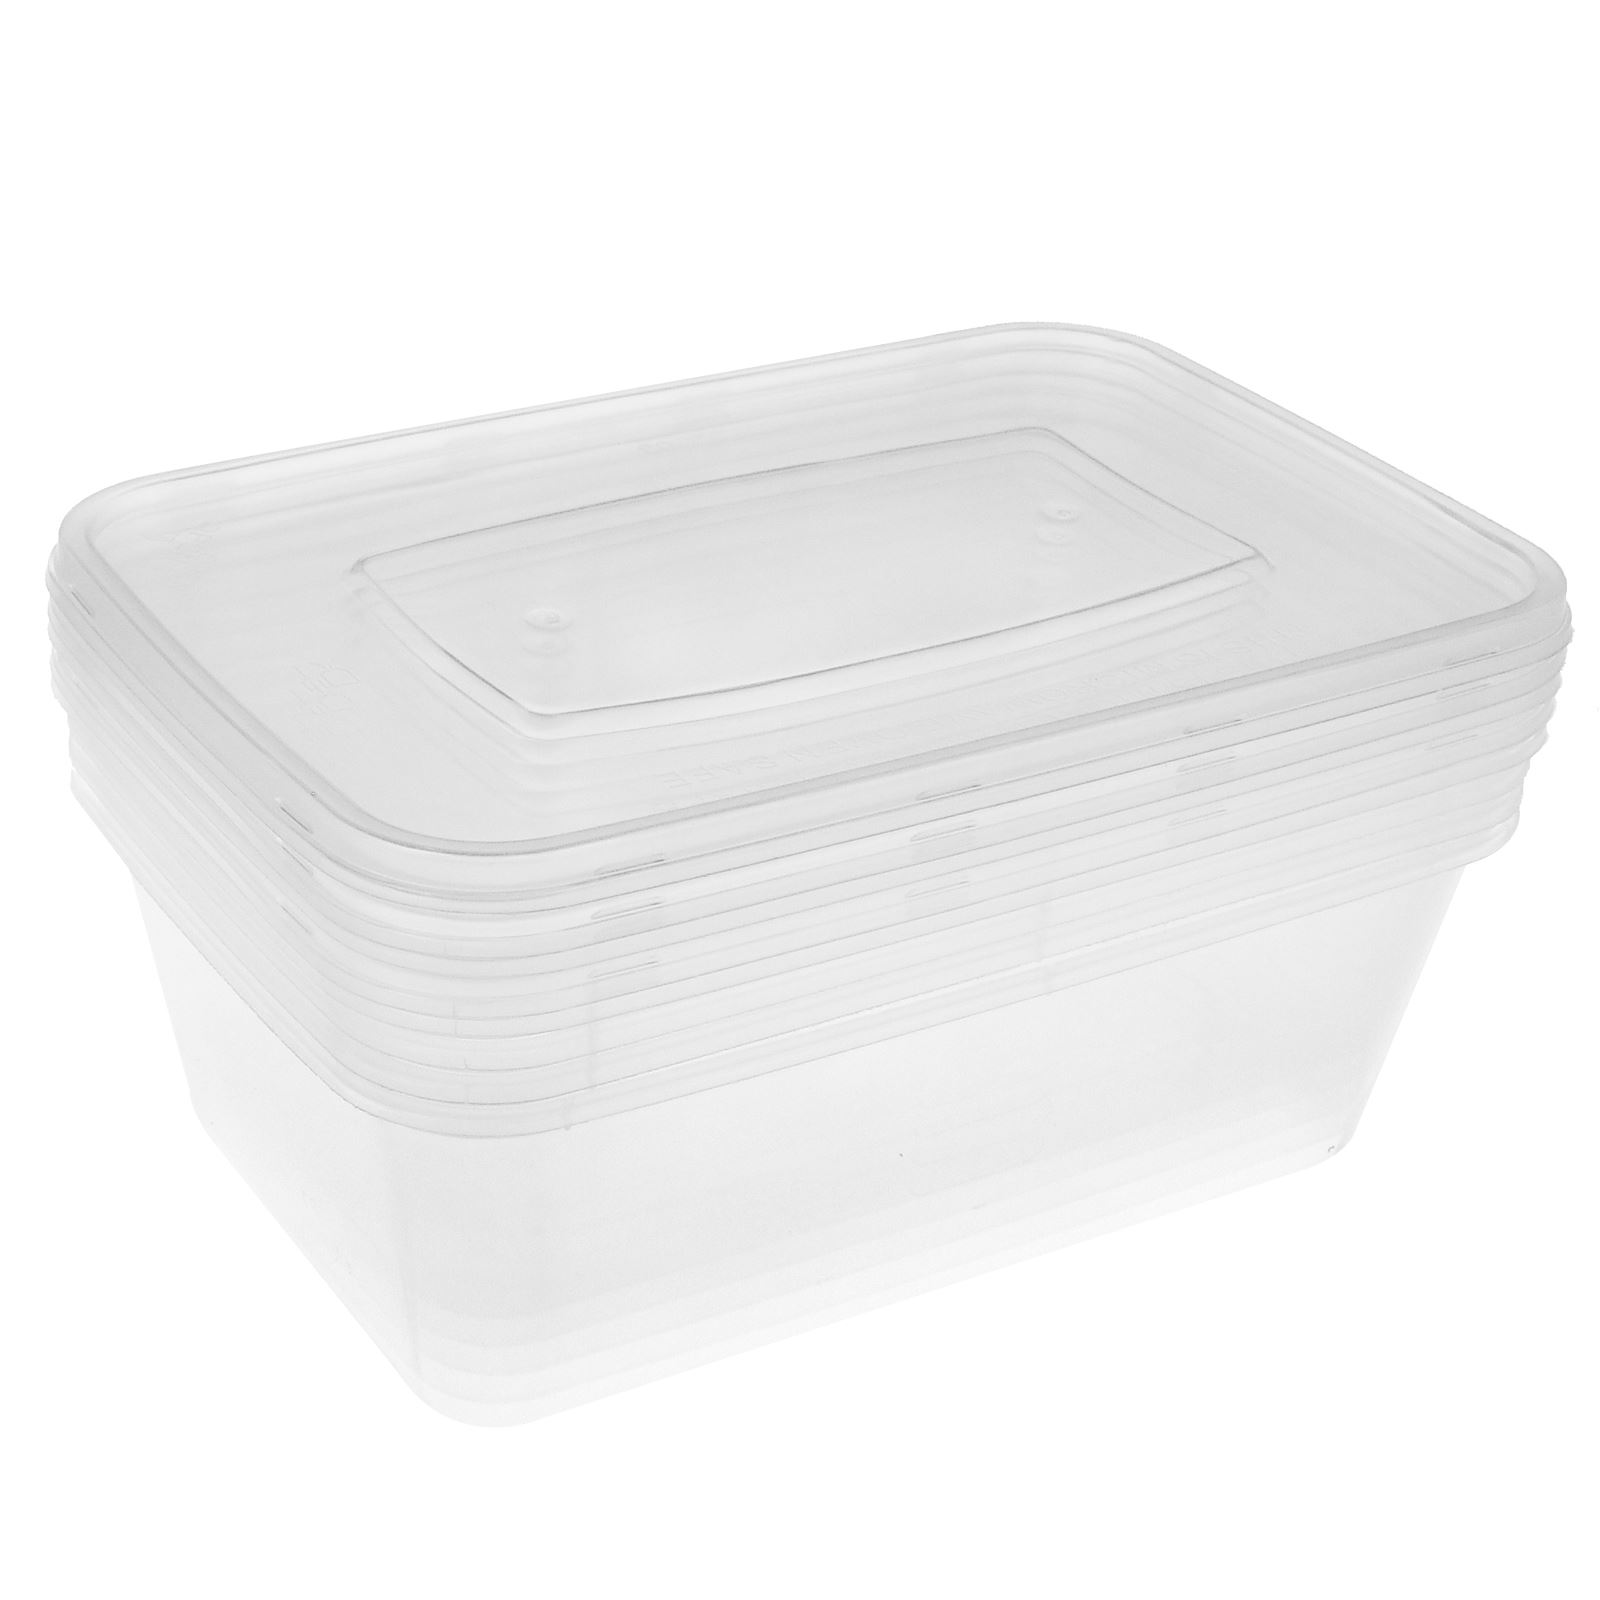 clear plastic food storage containers with lid microwave dishwasher freezer safe ebay. Black Bedroom Furniture Sets. Home Design Ideas